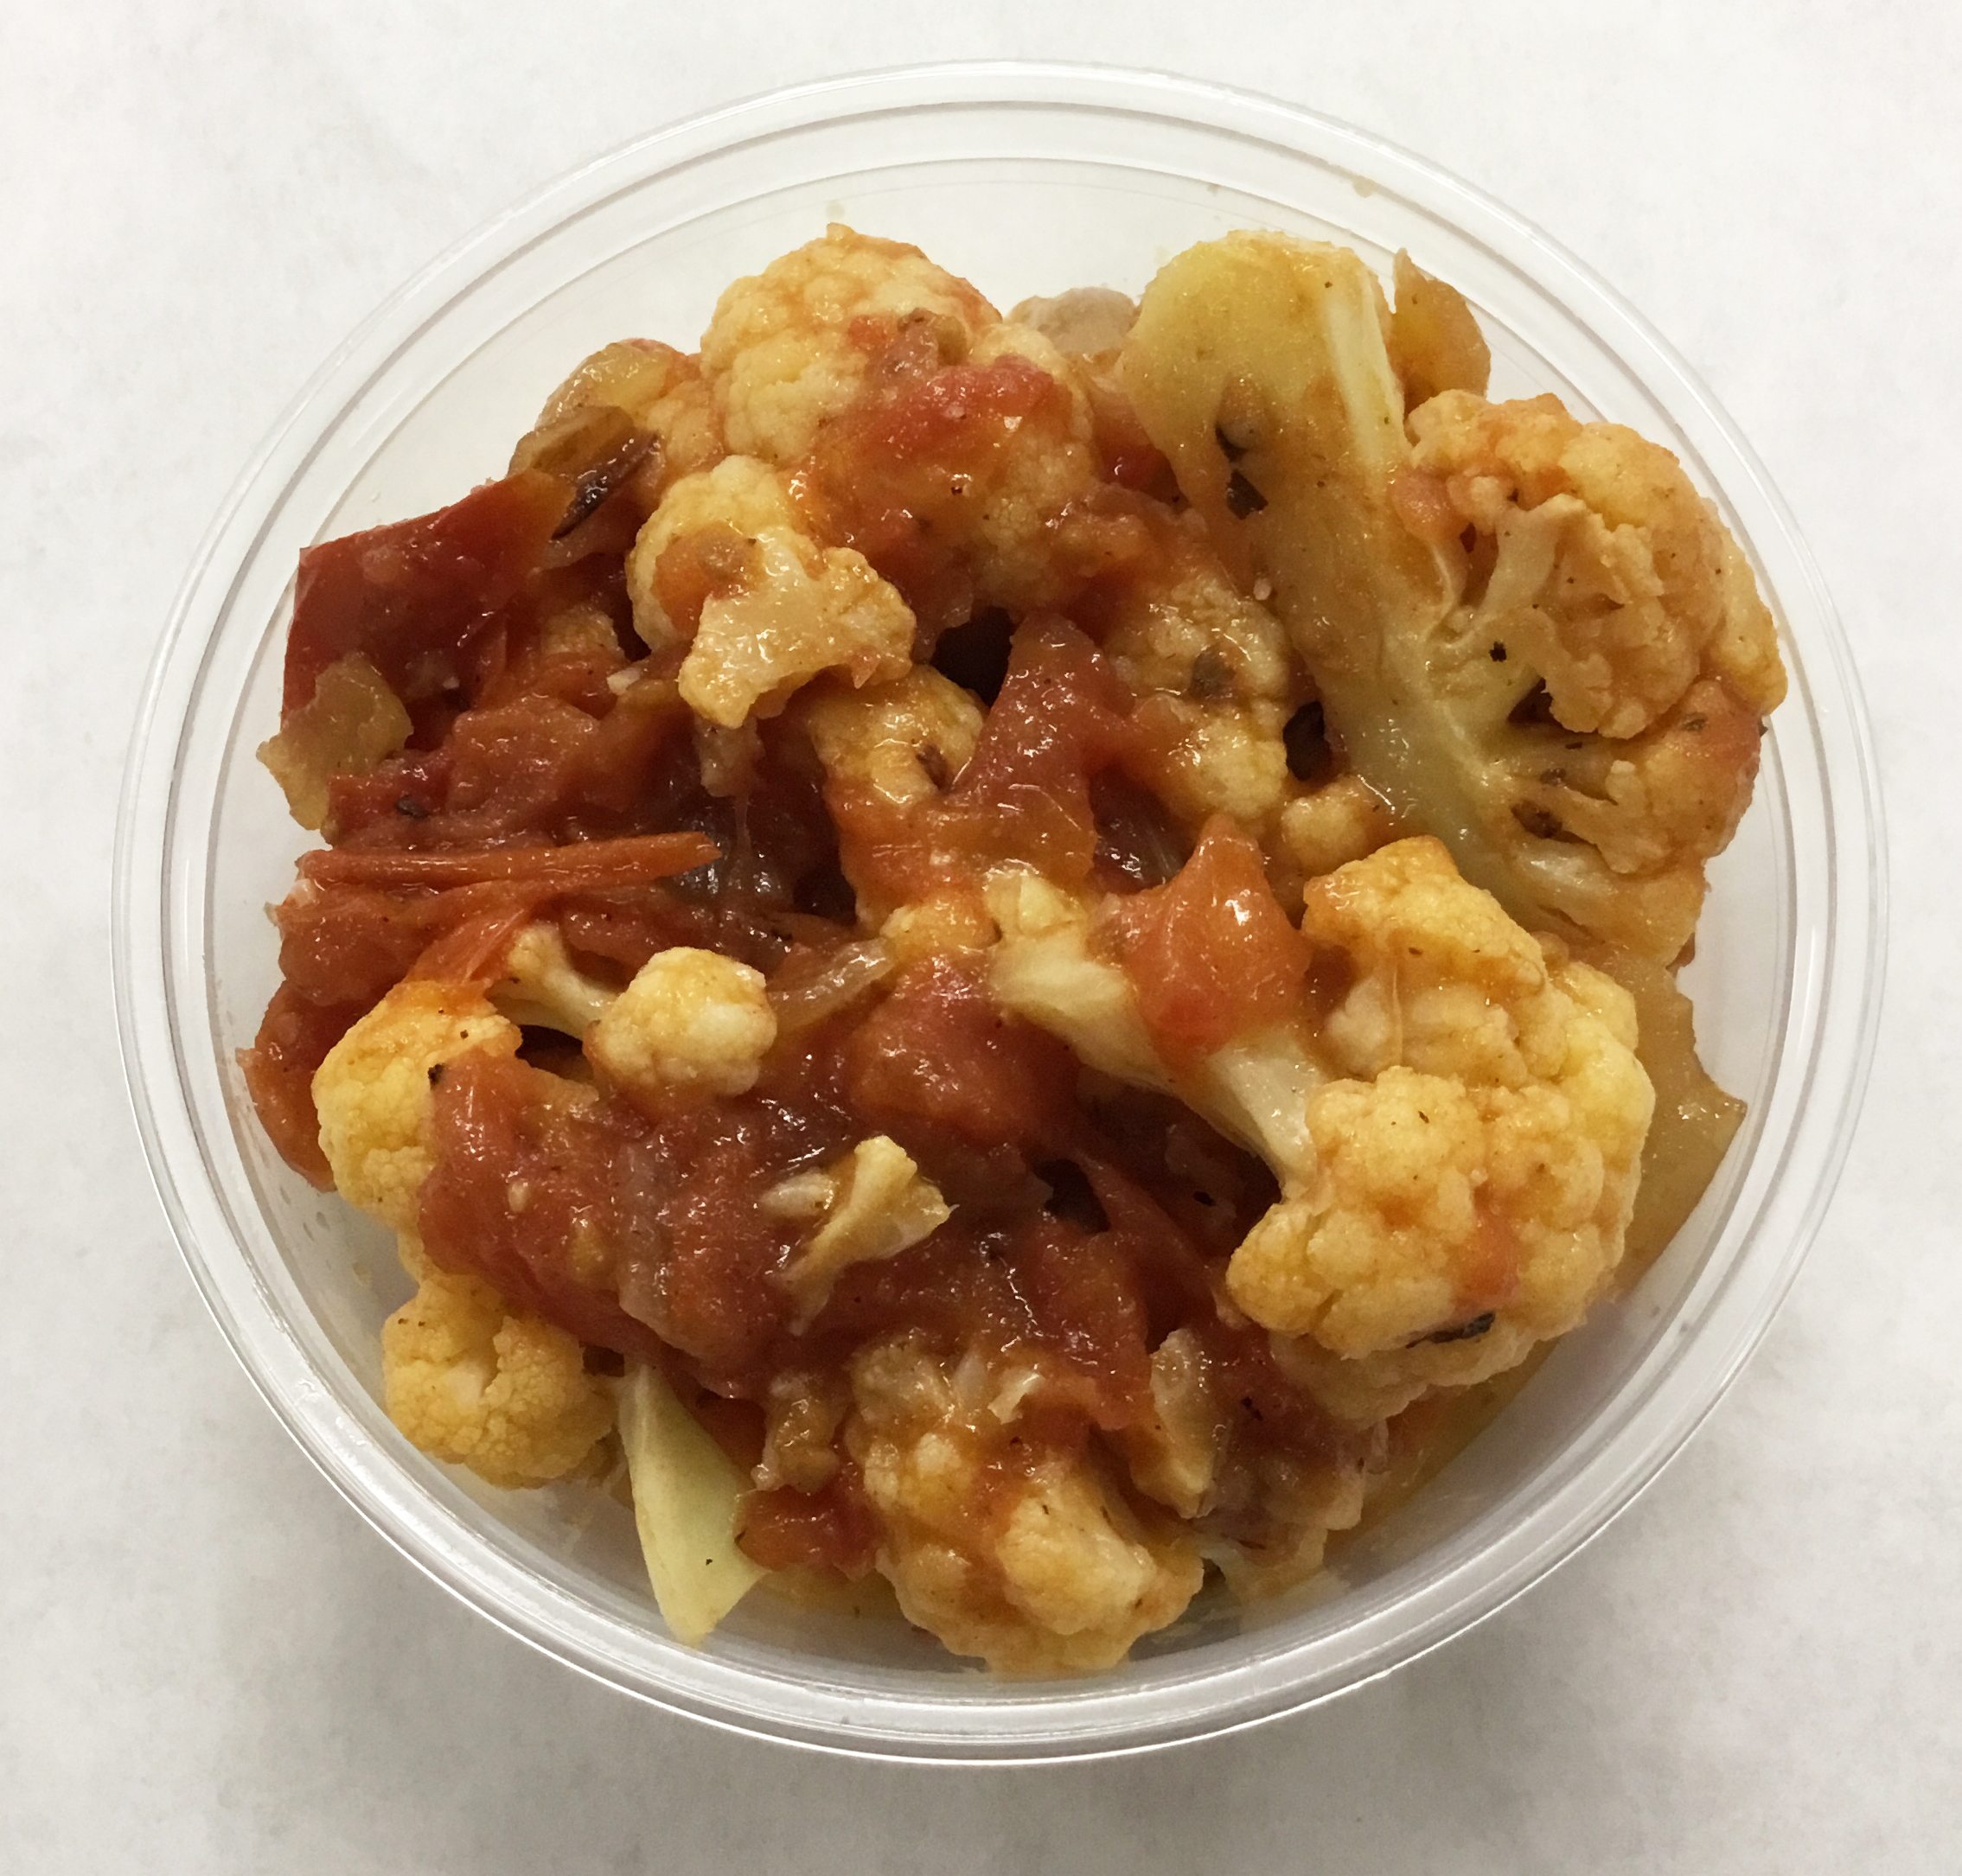 Cauliflower provencal with tomato, garlic, onion and basil.